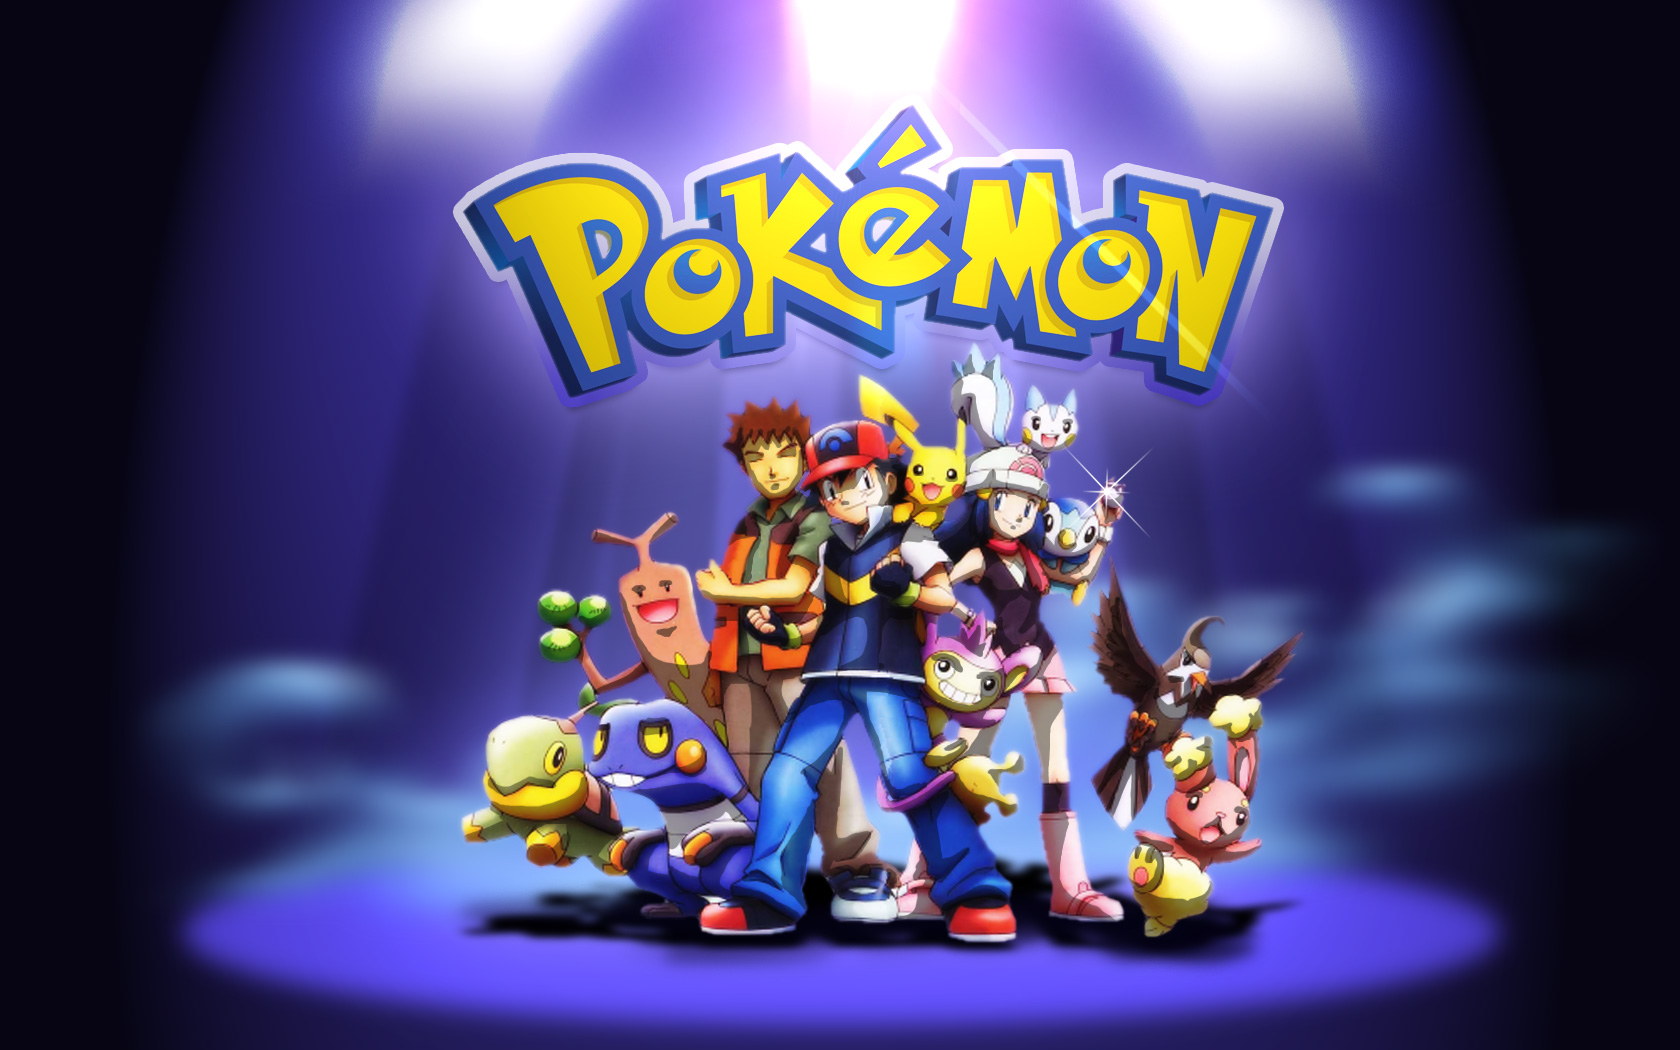 Pokemon wallpapers hd free download -